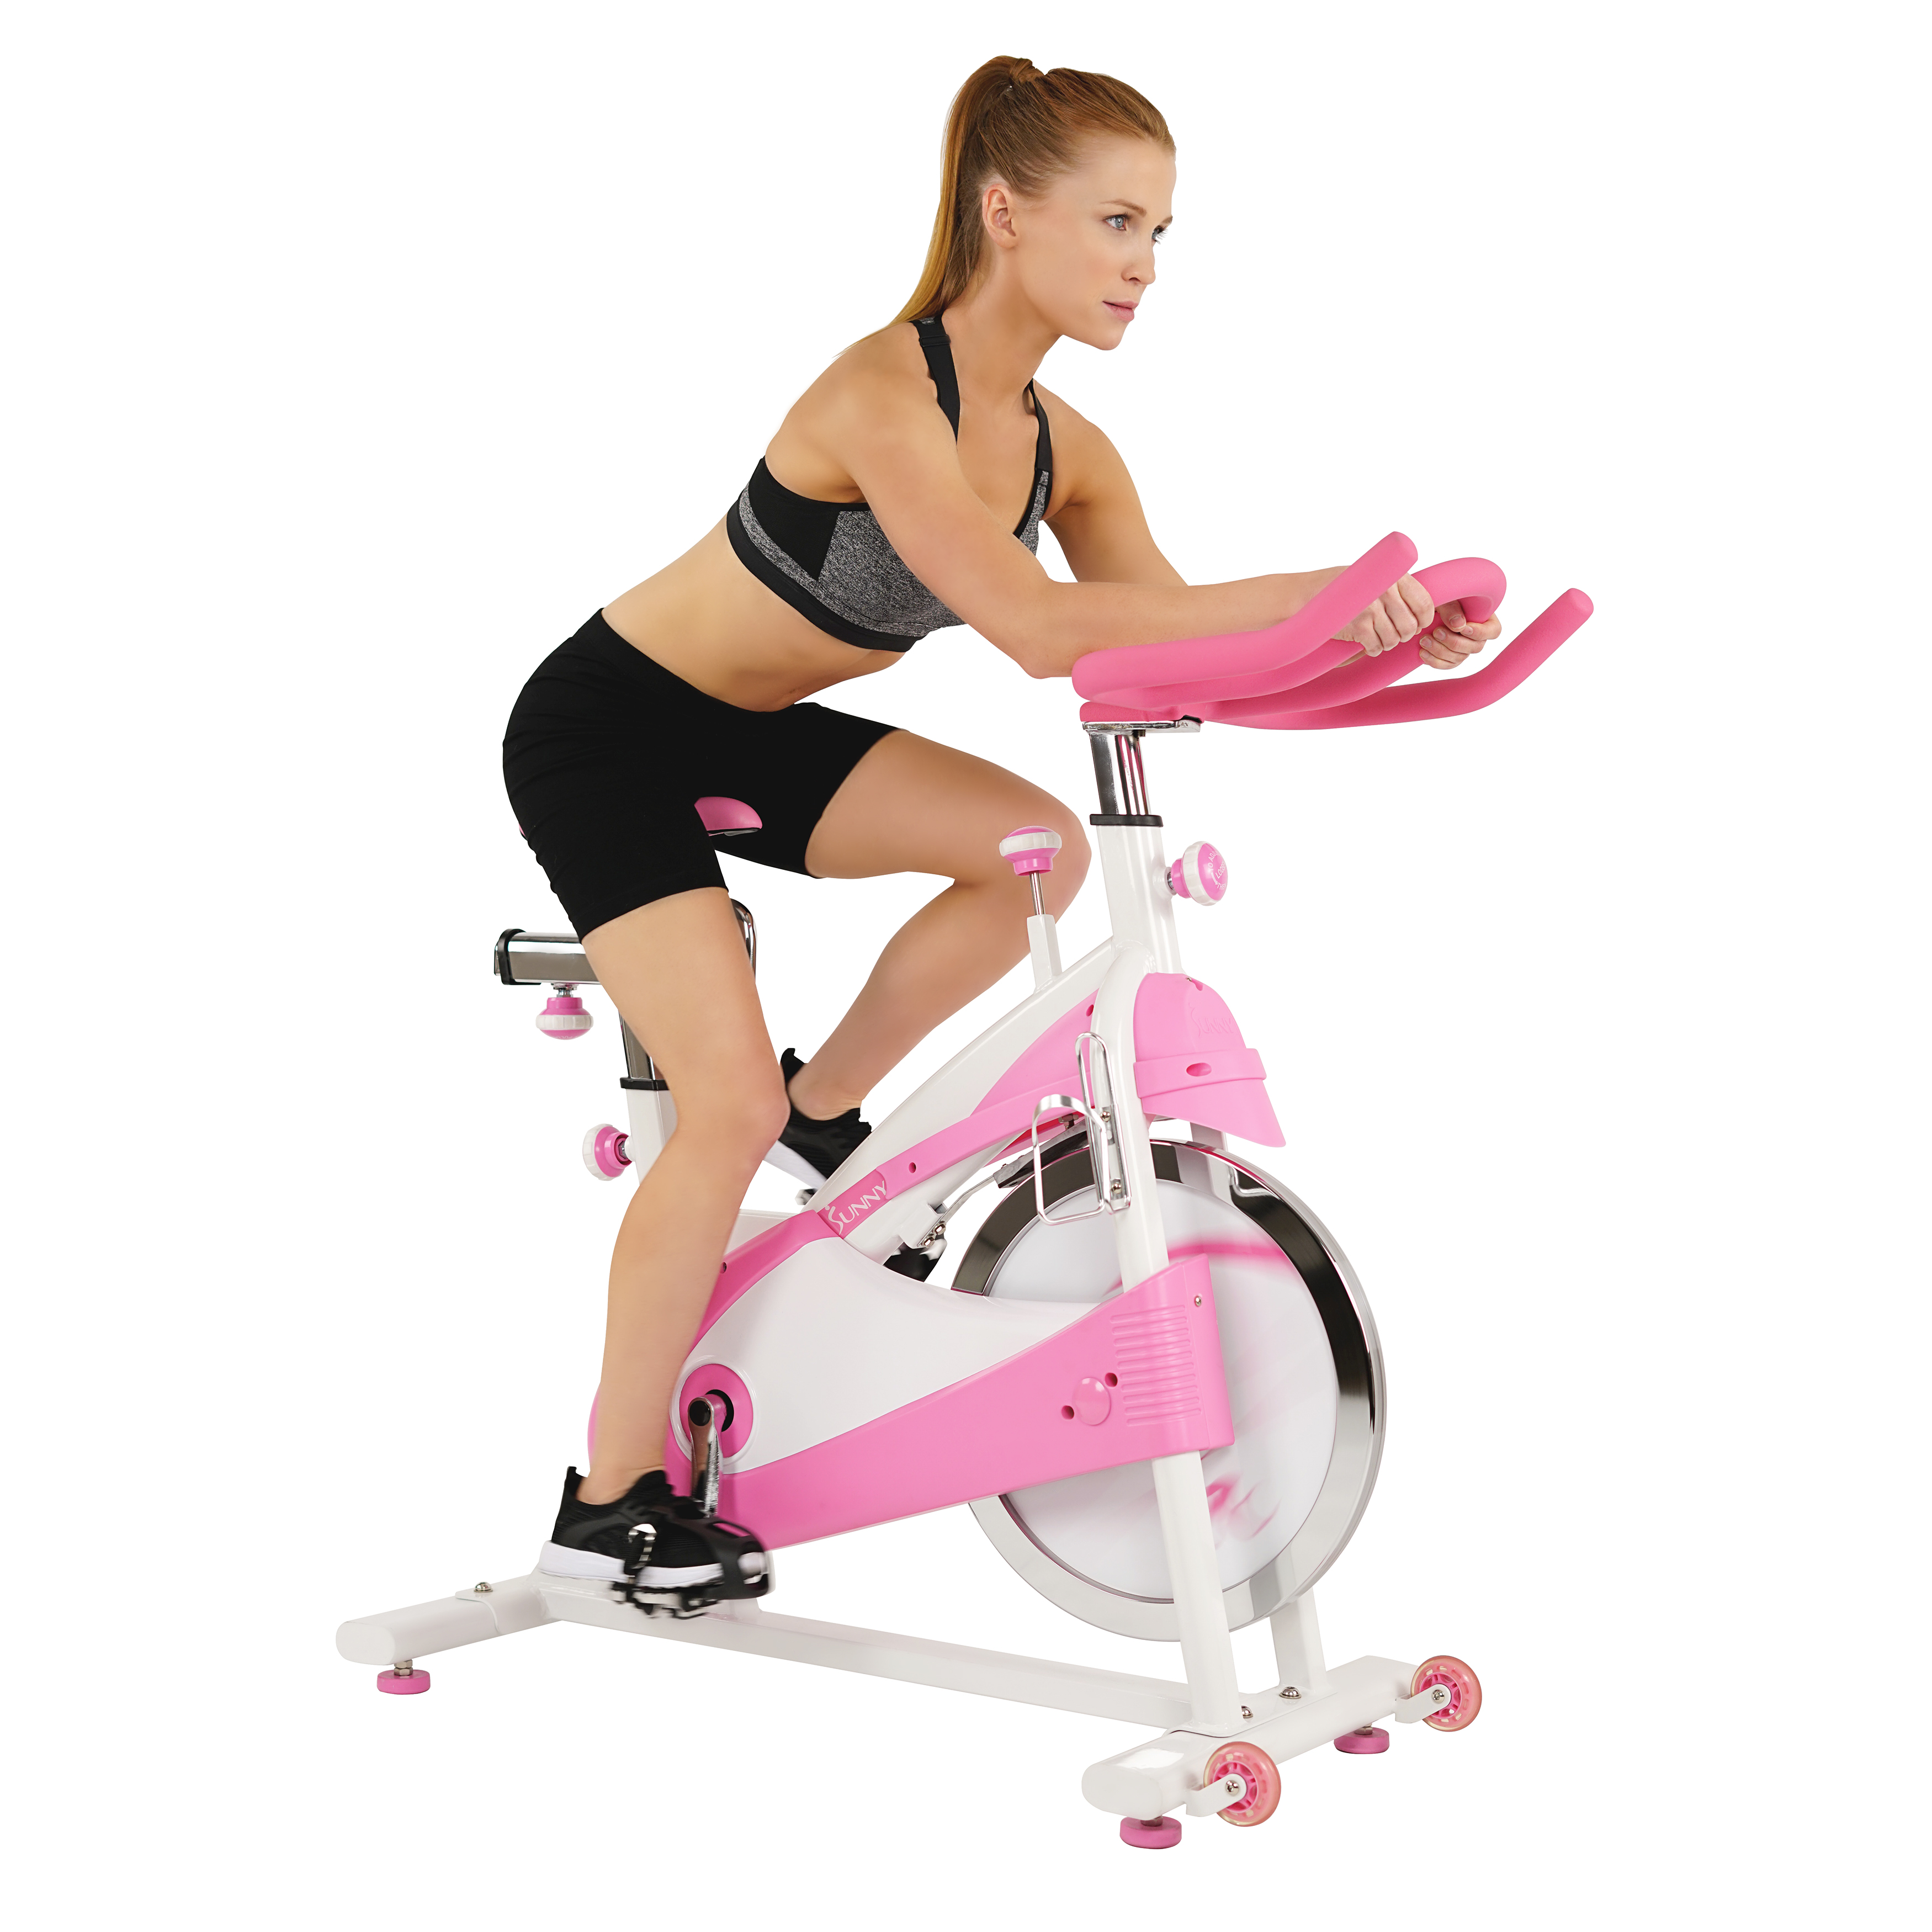 Sunny Health & Fitness P8150 Pink Premium Indoor Exercise Cycling Bike